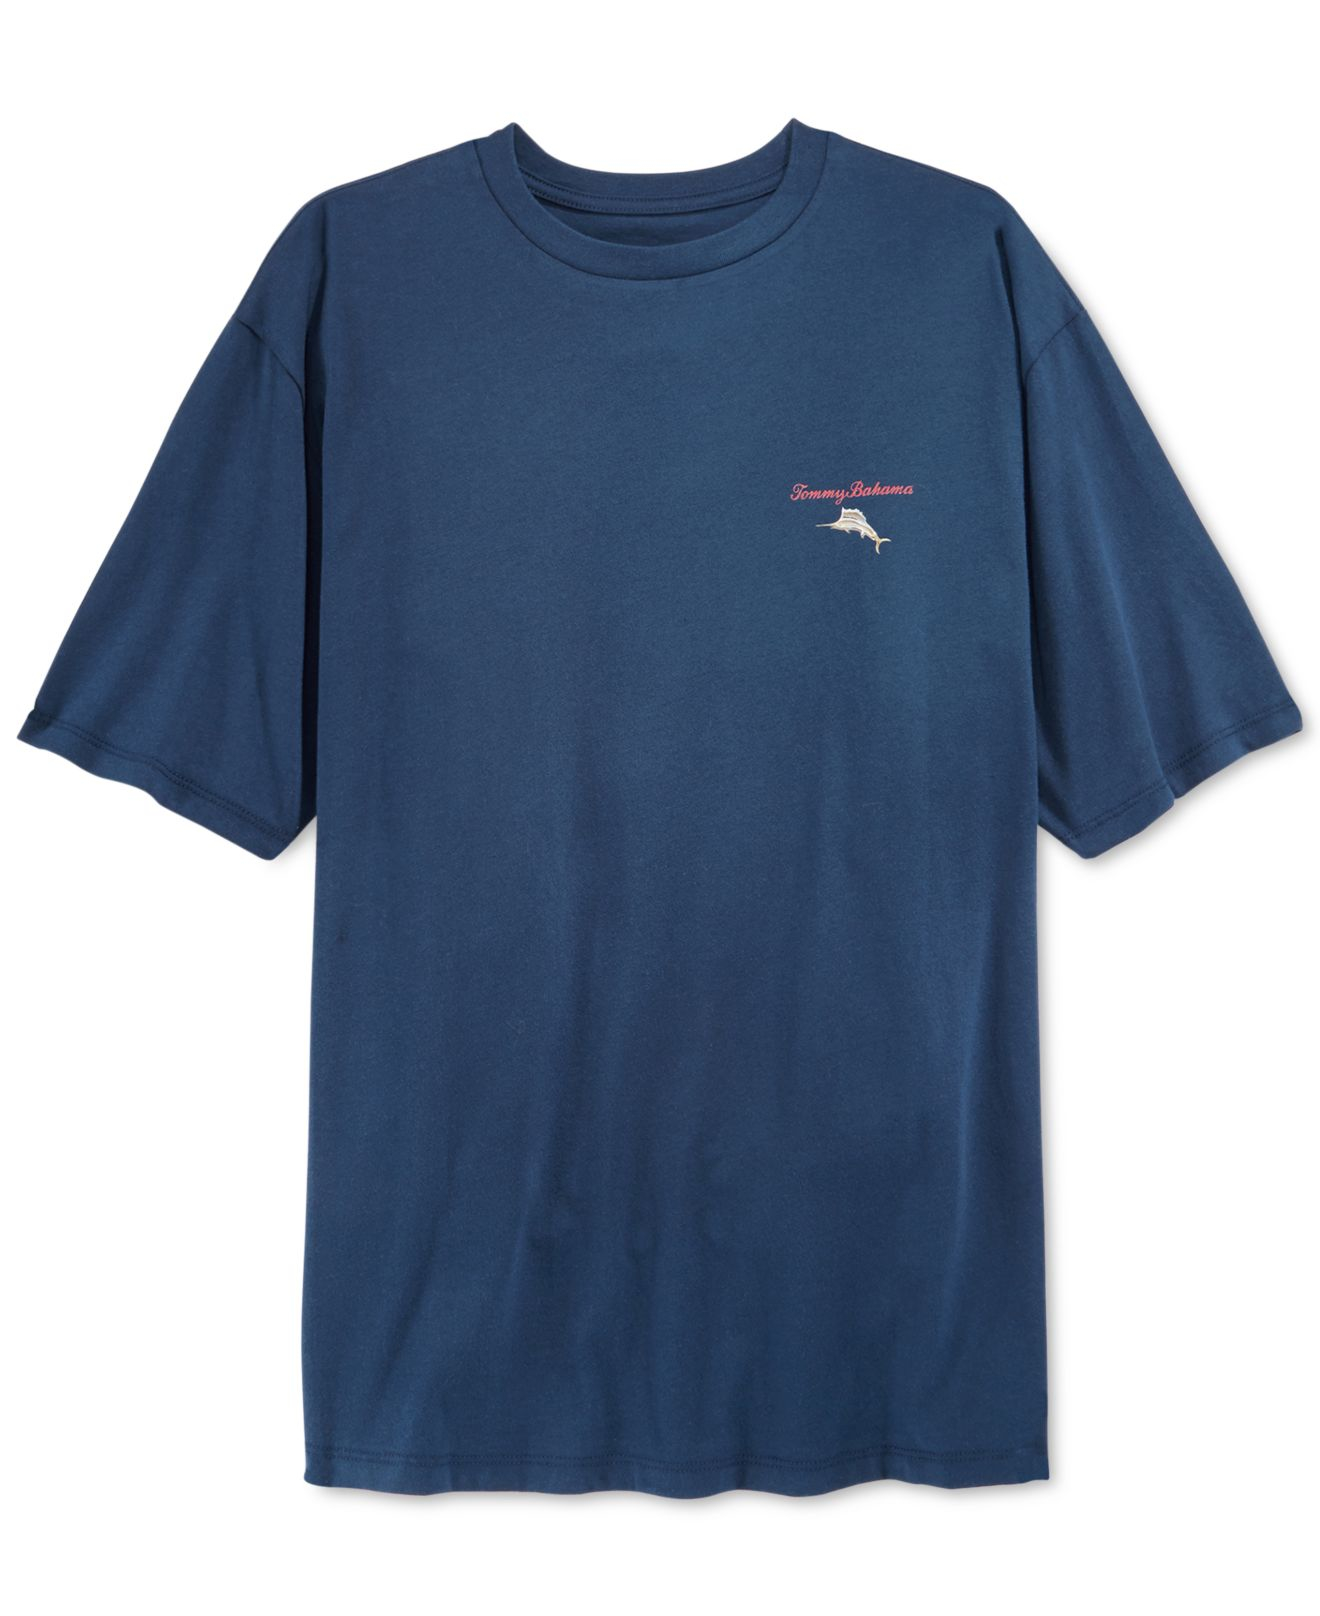 Tommy Bahama The Final Meltdown Graphic Print T Shirt In